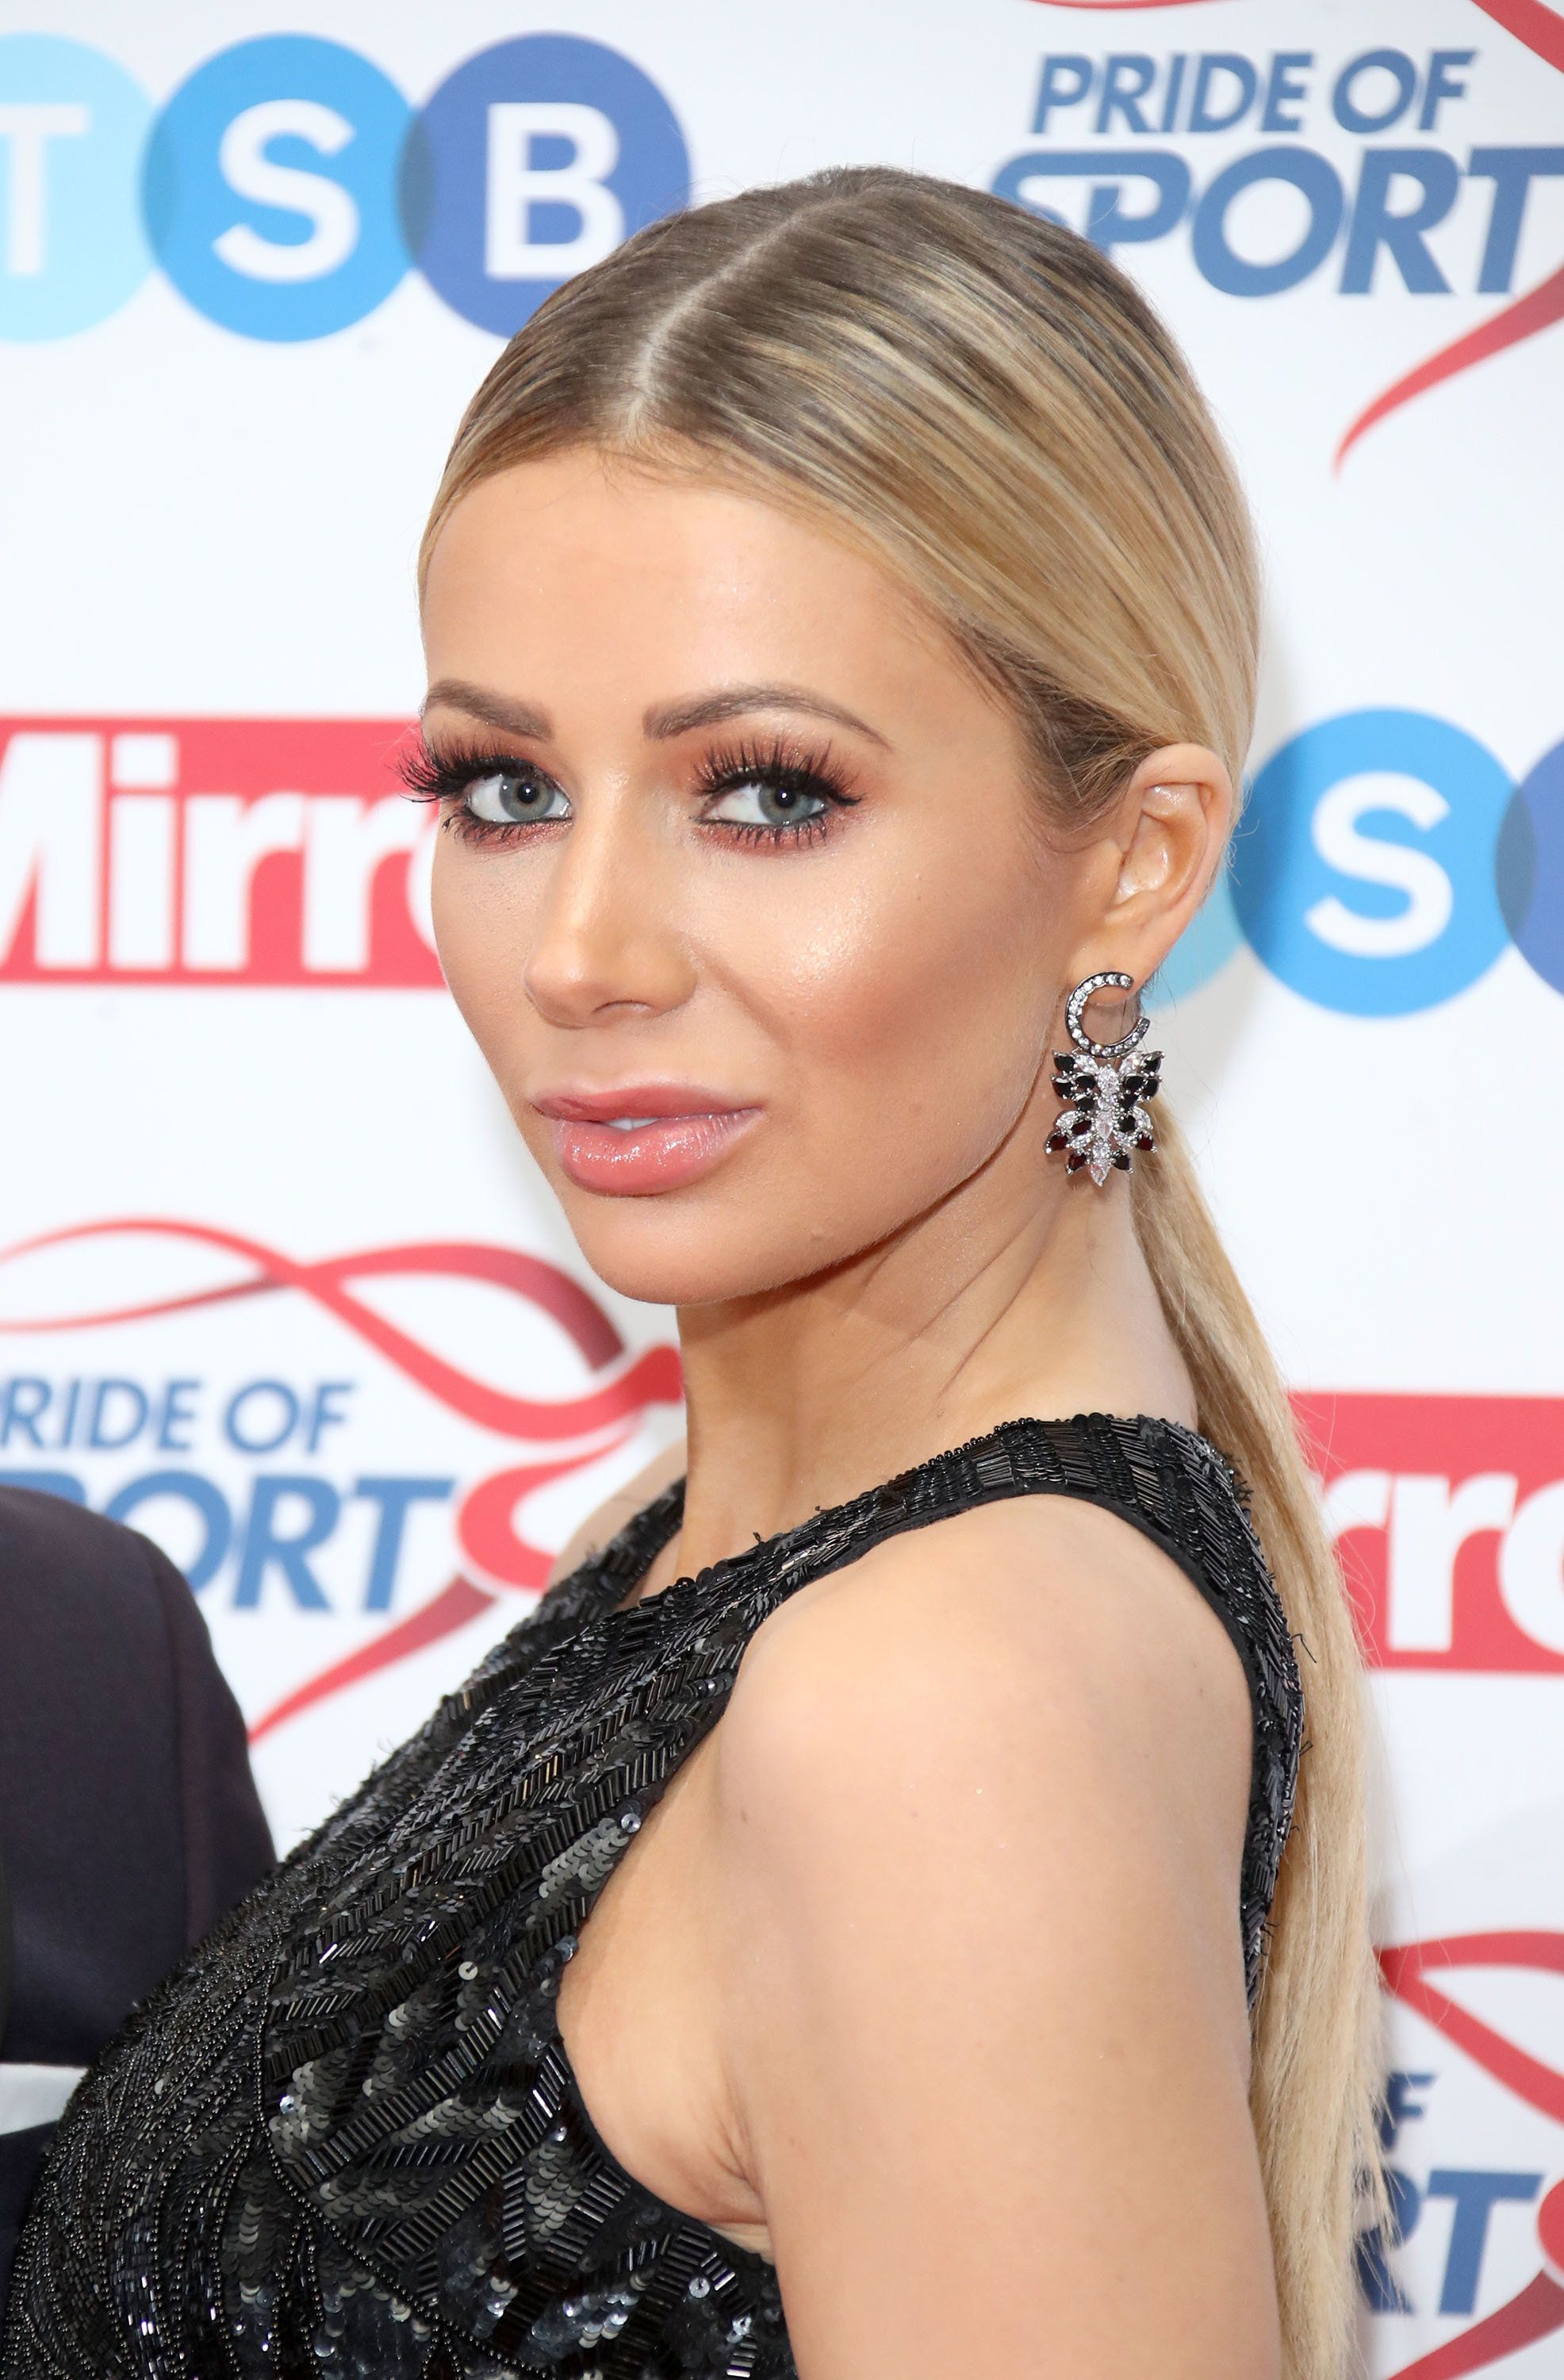 Olivia Attwood Opens Up About Her Post-'Love Island' Experiences Of The Gender Pay